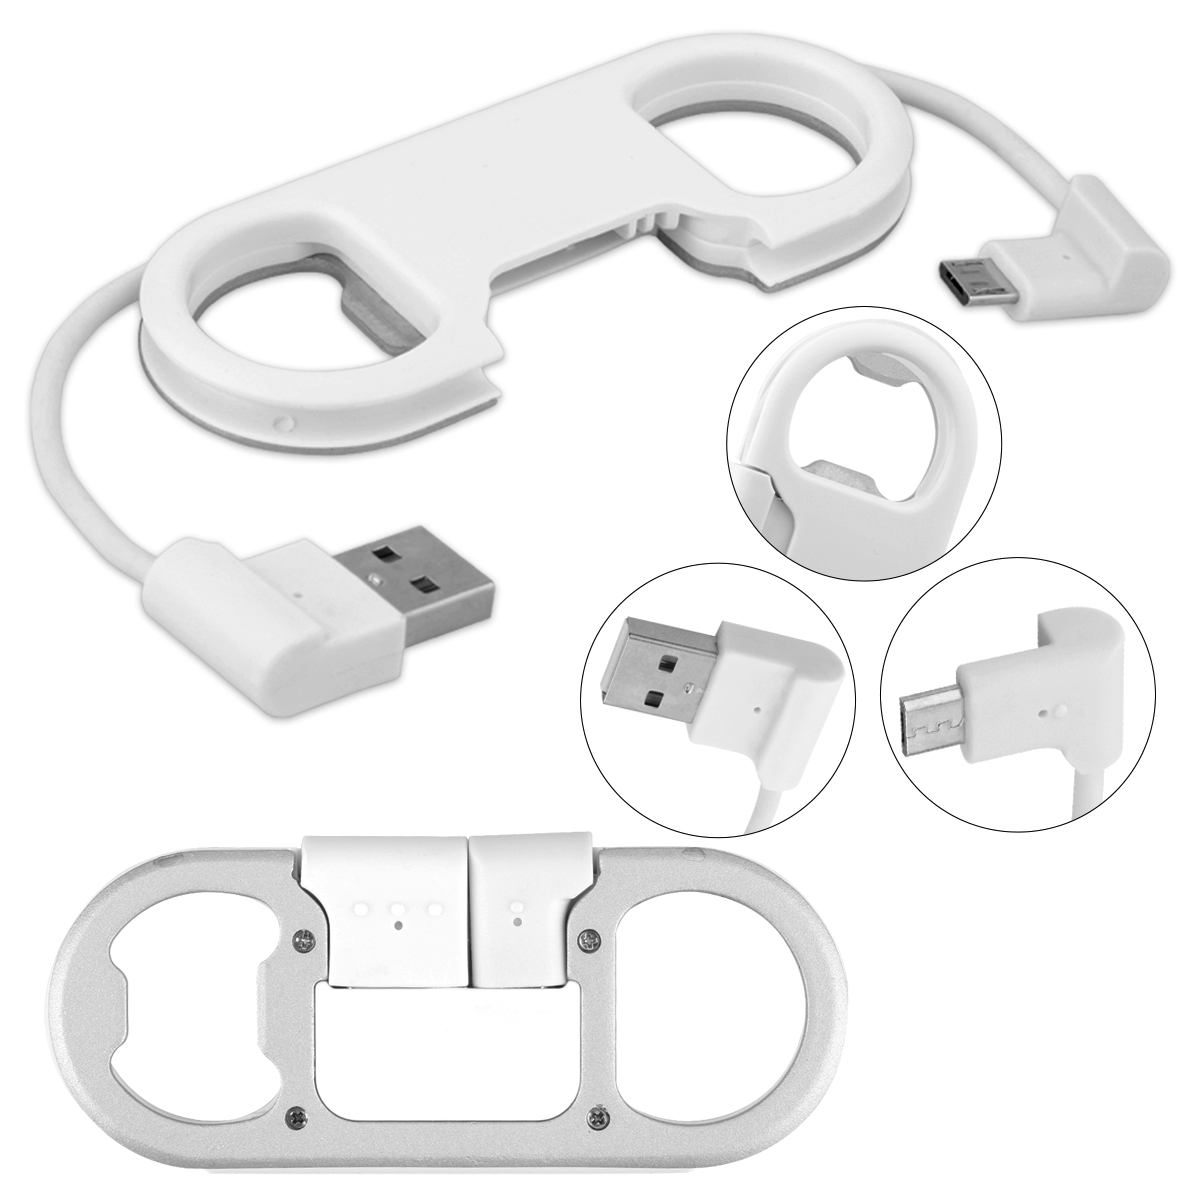 Charge Sync Cable+ Bottle Opener Key Chain High Speed USB Cable 2.1A Convenient Mini Pocket-size Portable Compact For Micro USB Samsung, HTC, Huawei, Xiaomi For travel and business